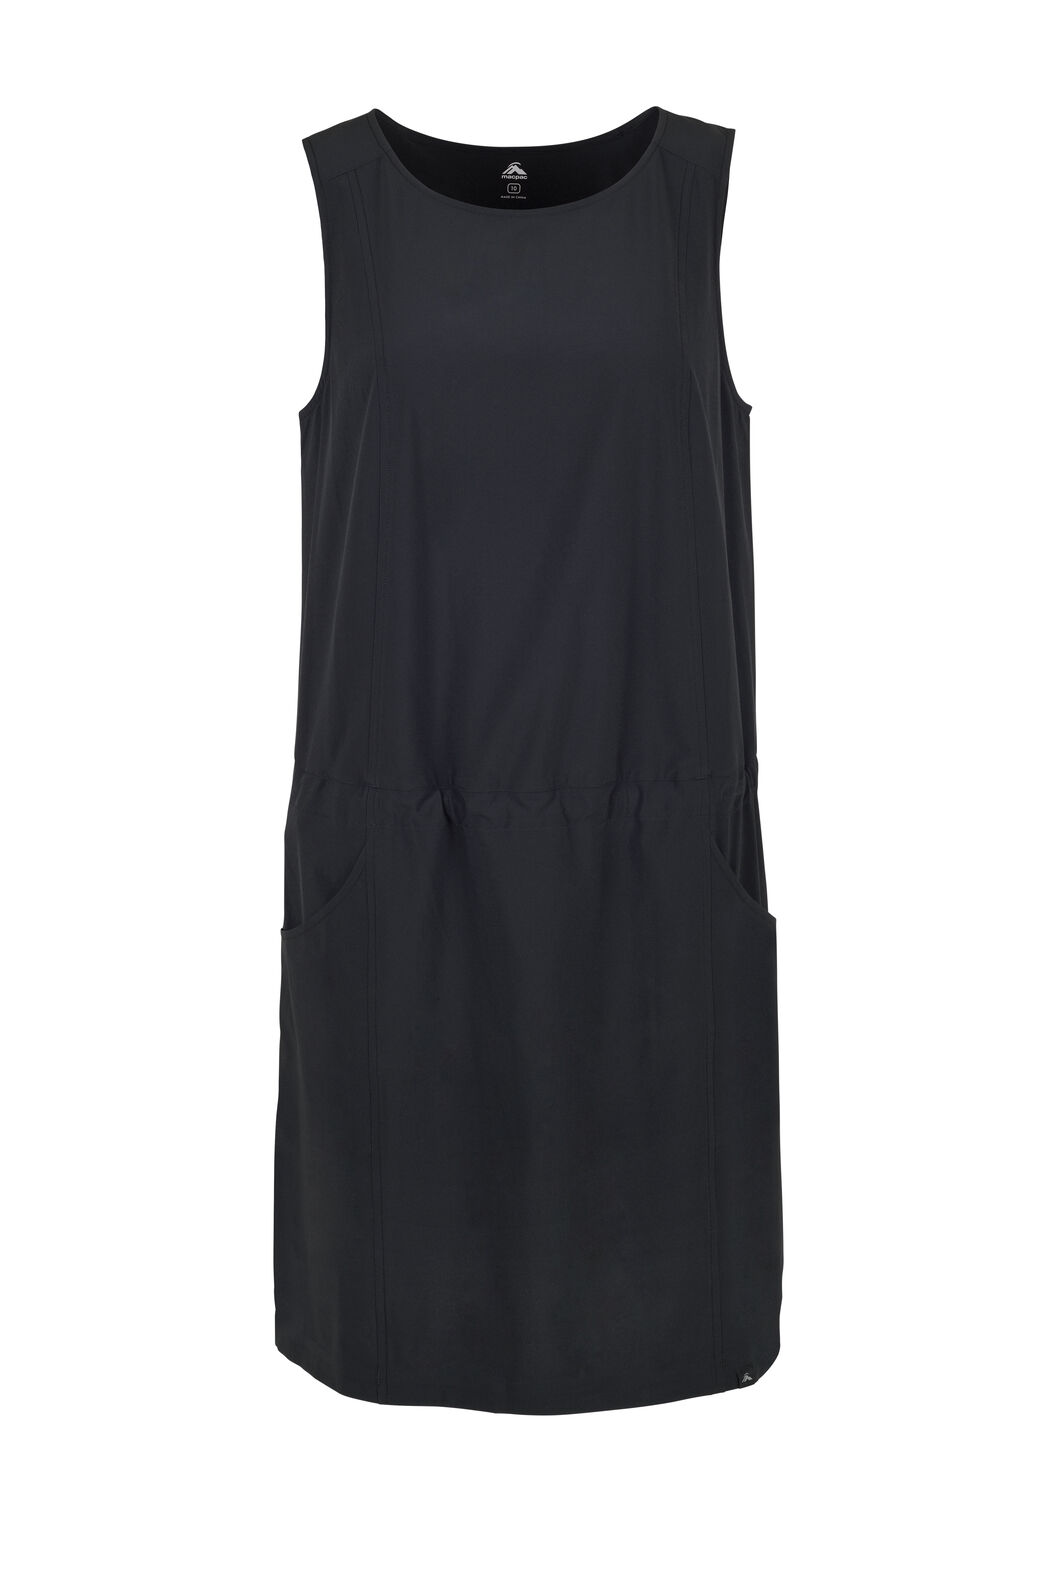 Macpac Mica Dress — Women's, Black, hi-res